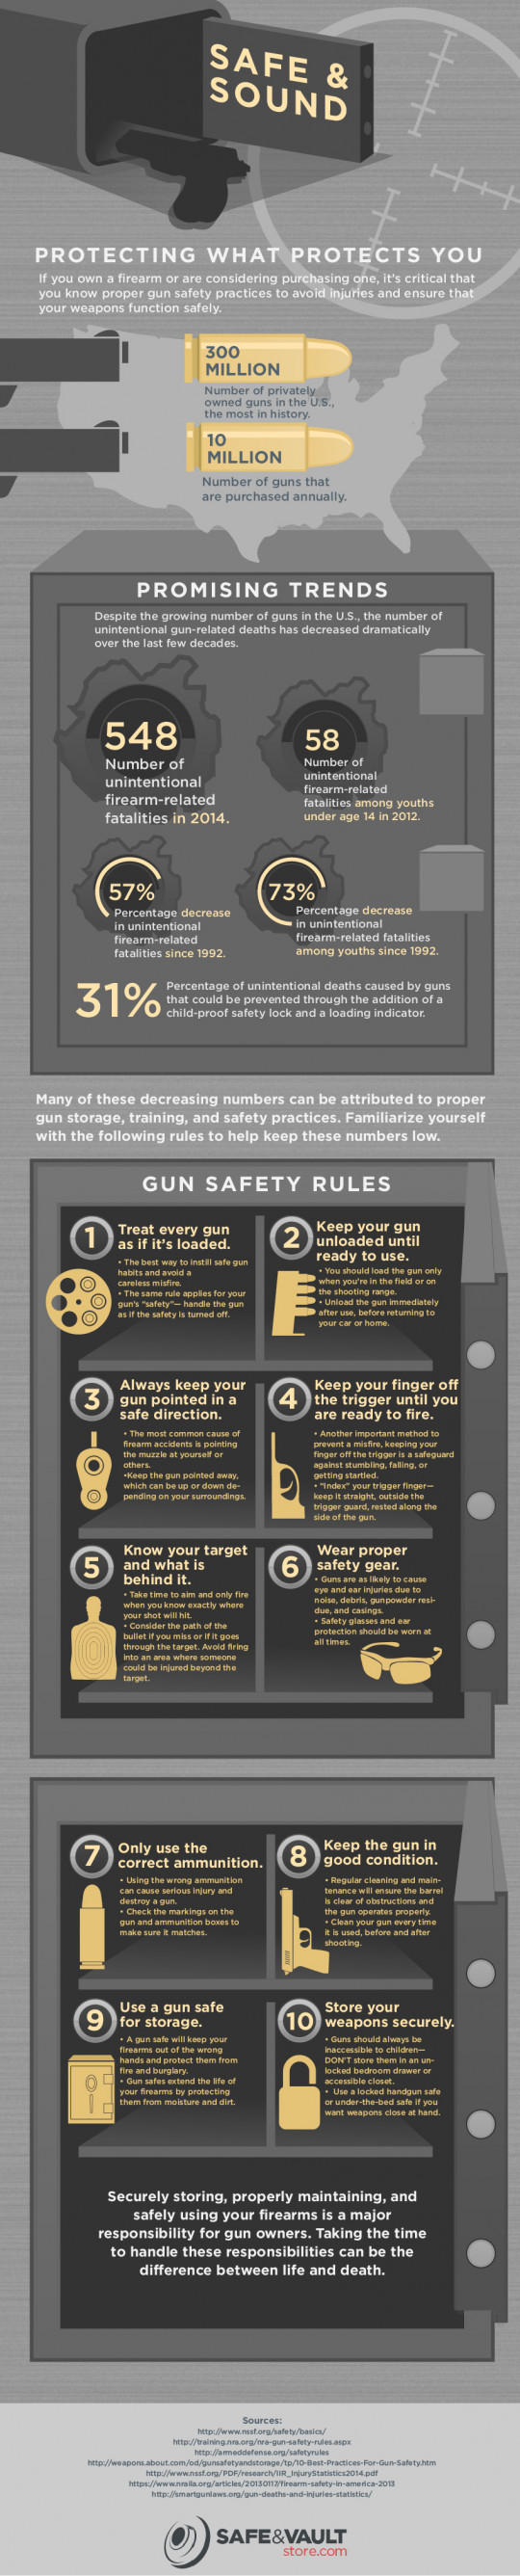 Protecting What Protects You | A Note on Gun Safety